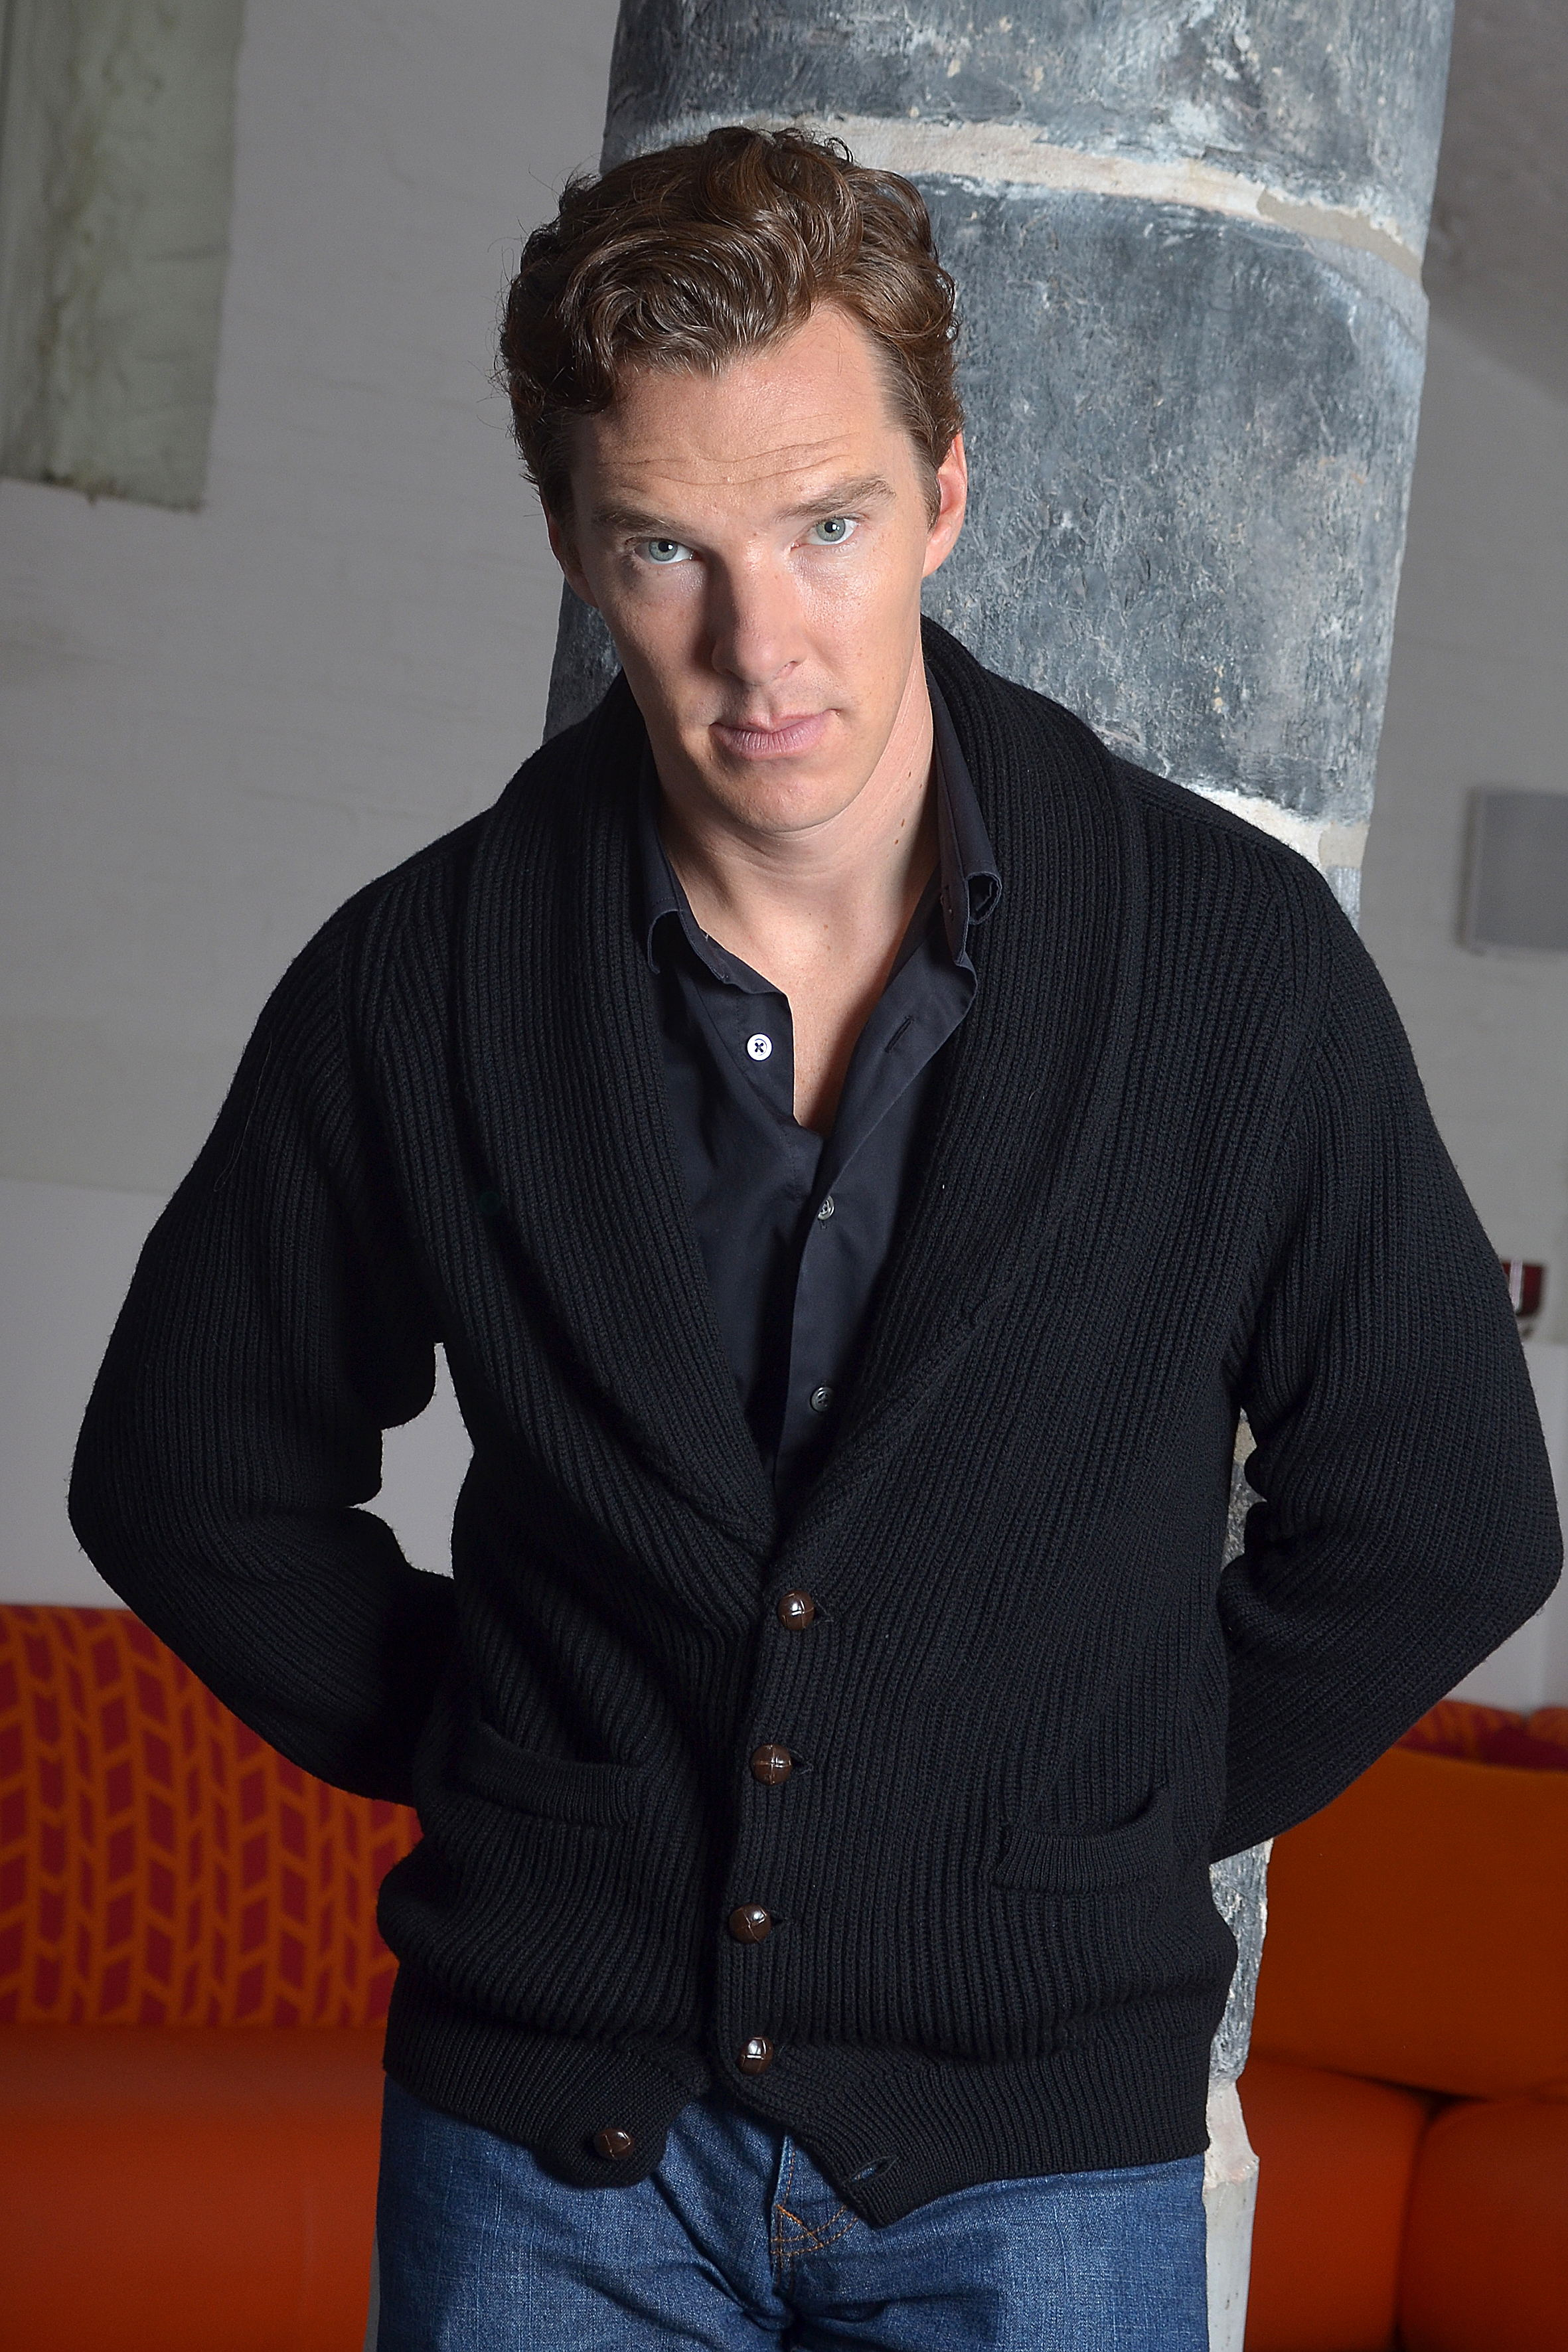 Benedict Cumberbatch photo, pics, wallpaper - photo #